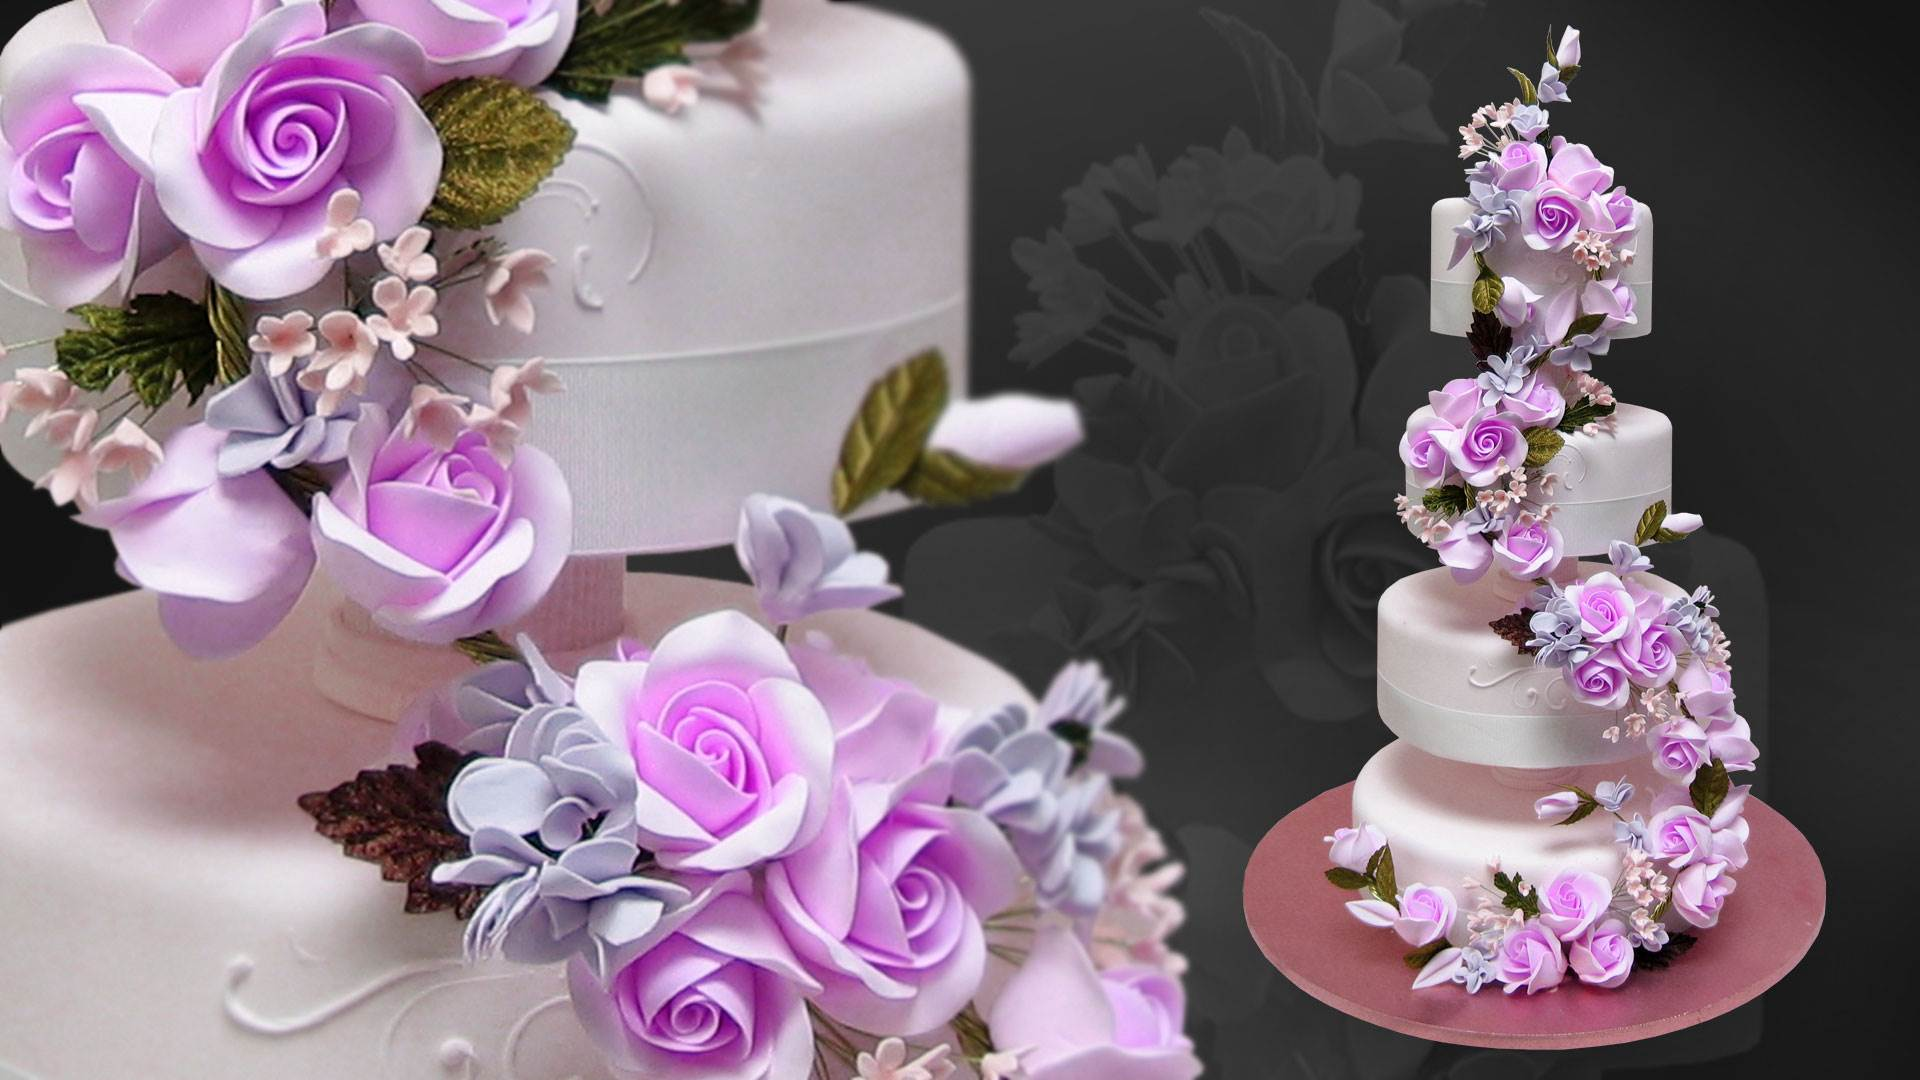 Cakes images wedding cake hd wallpaper and background photos - Wedding Cakes Wallpapers Android Apps On Google Play 1920 1080